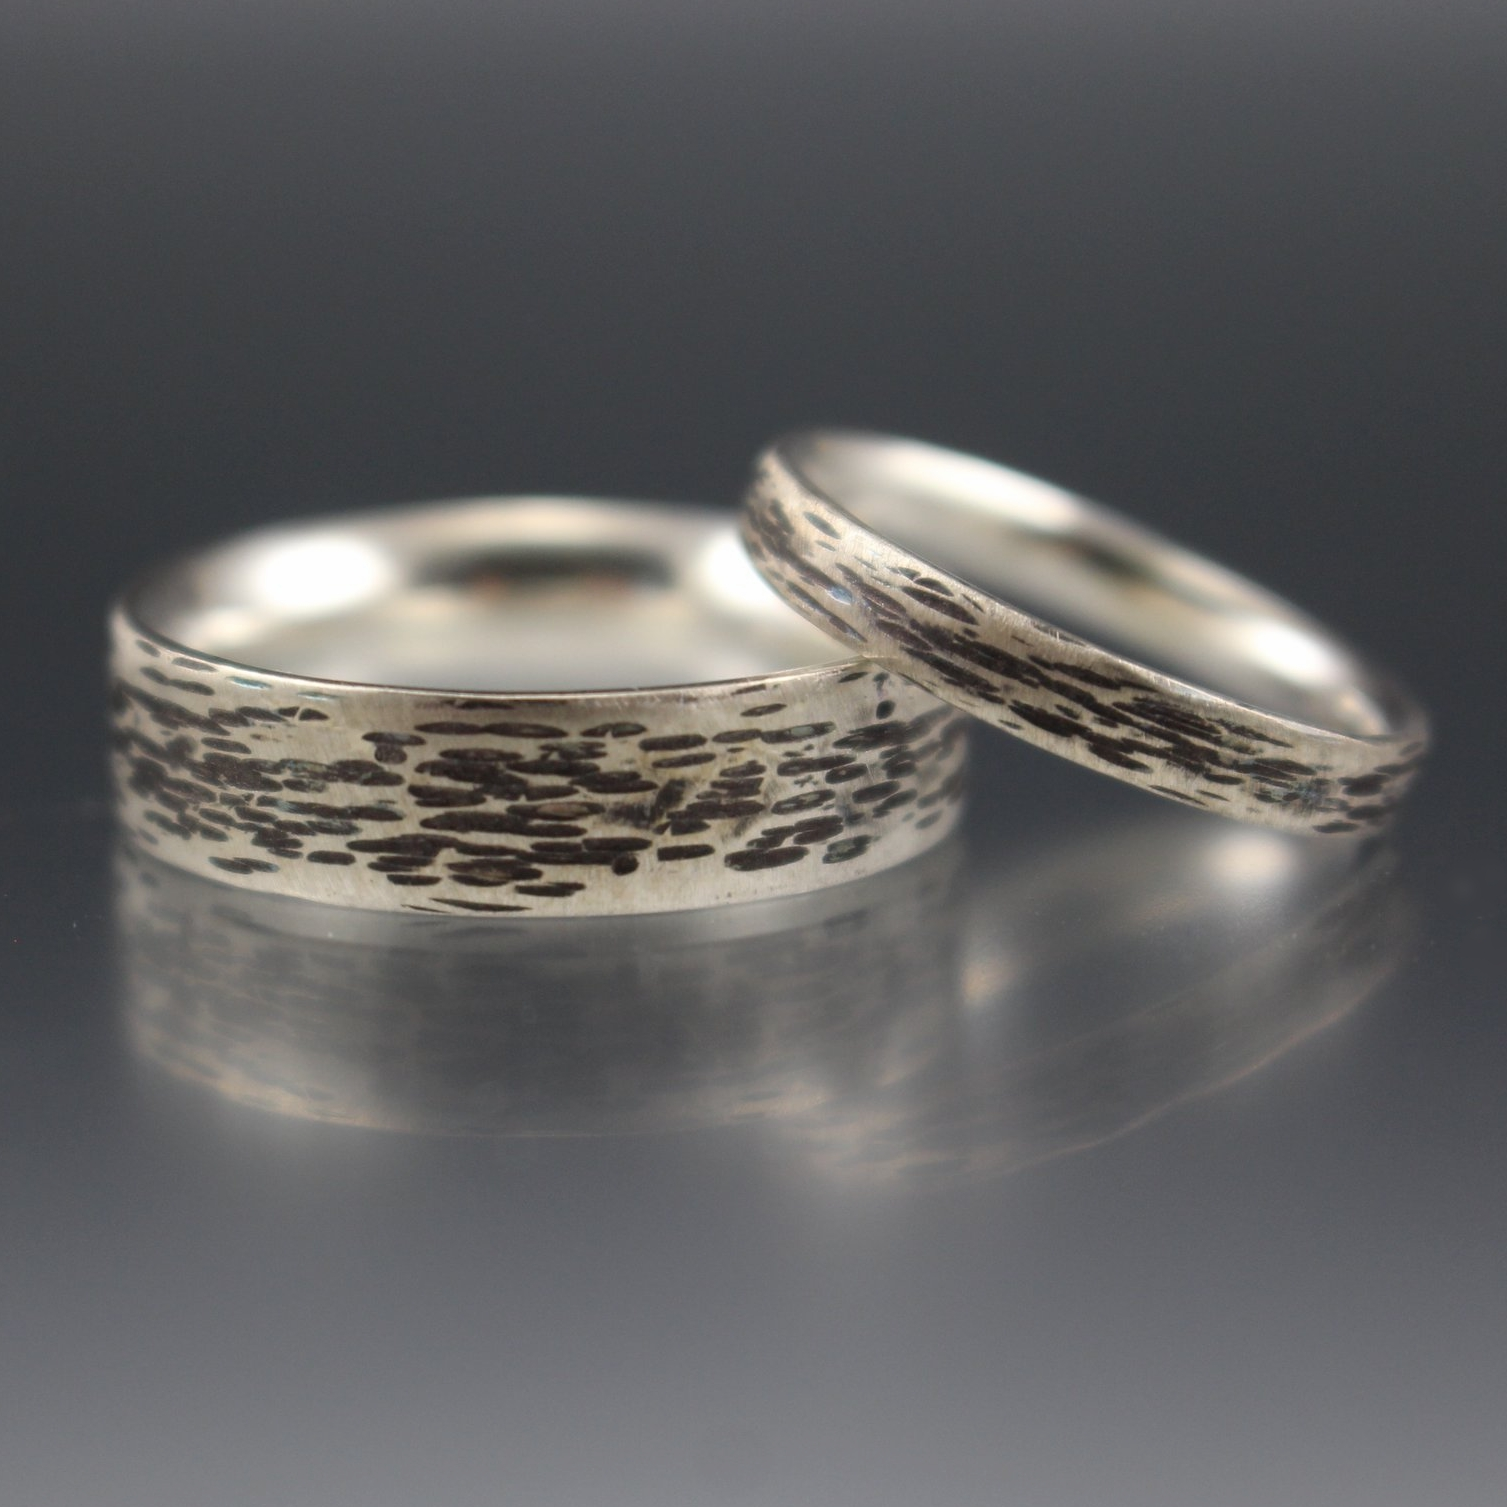 Silver Rings for a Silver Anniversary!